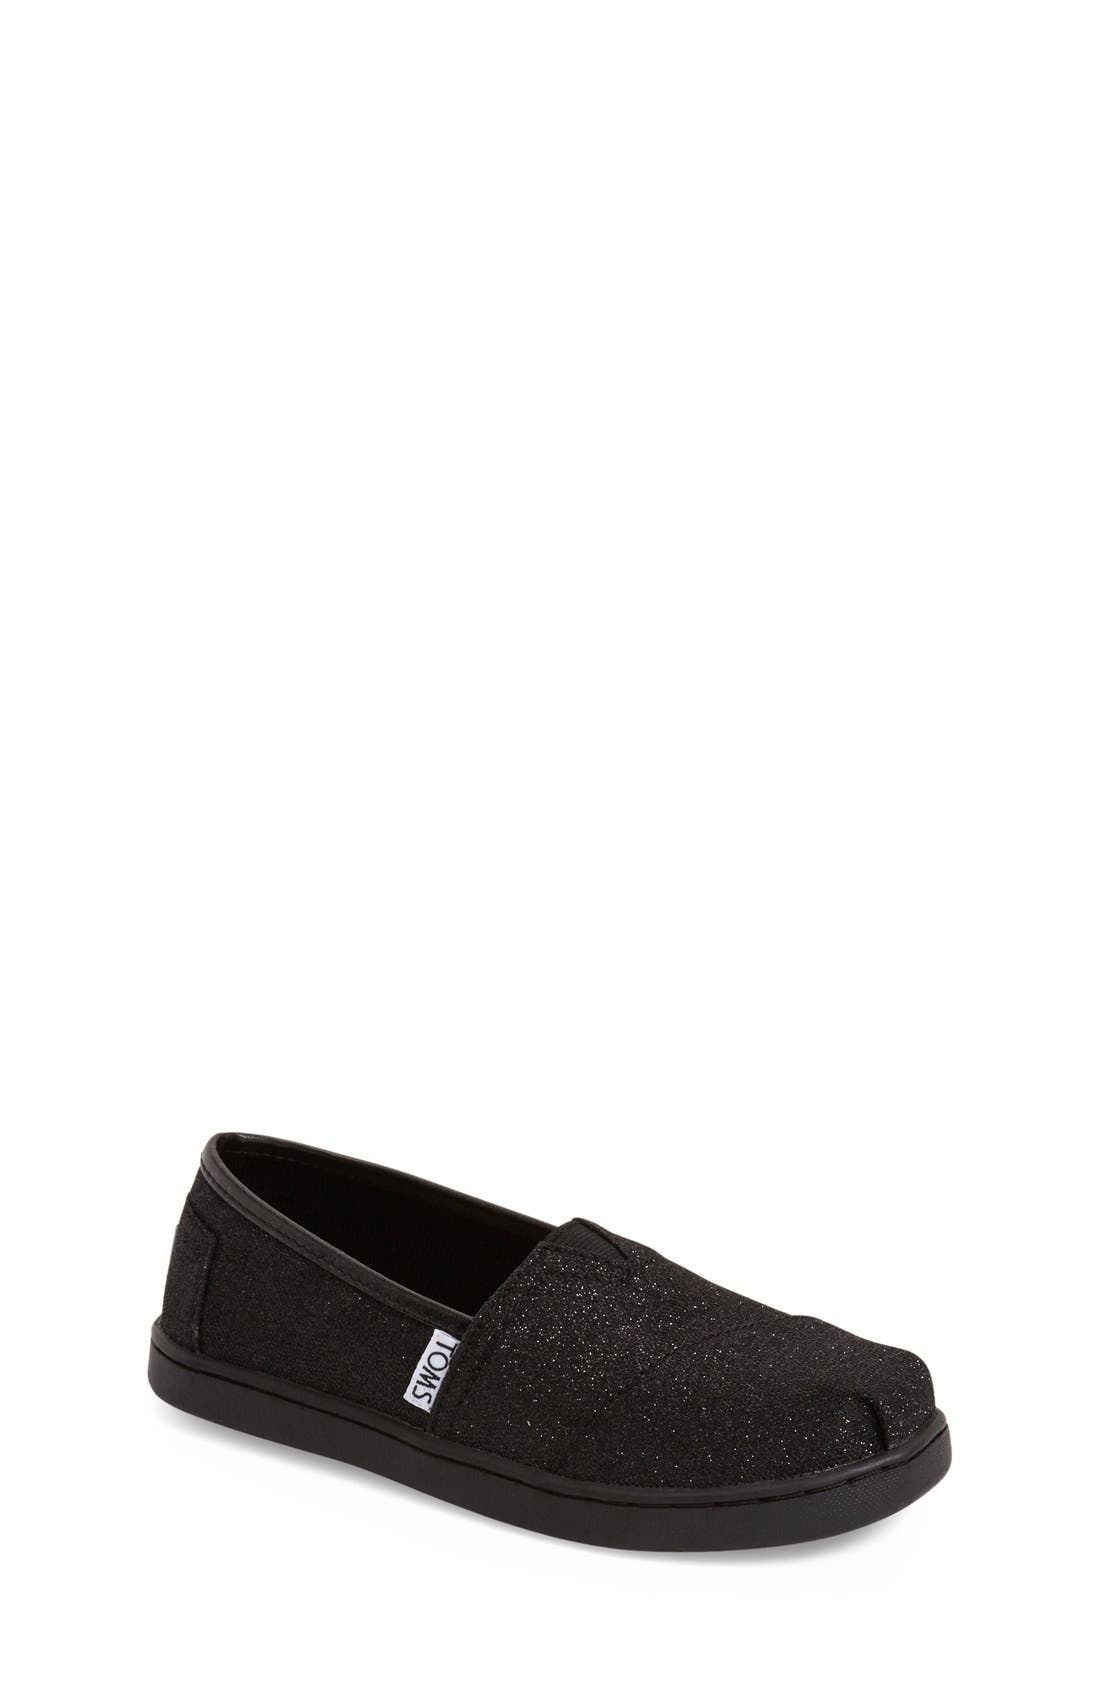 TOMS 'Glimmer' Slip-On (Toddler, Little Kid & Big Kid)